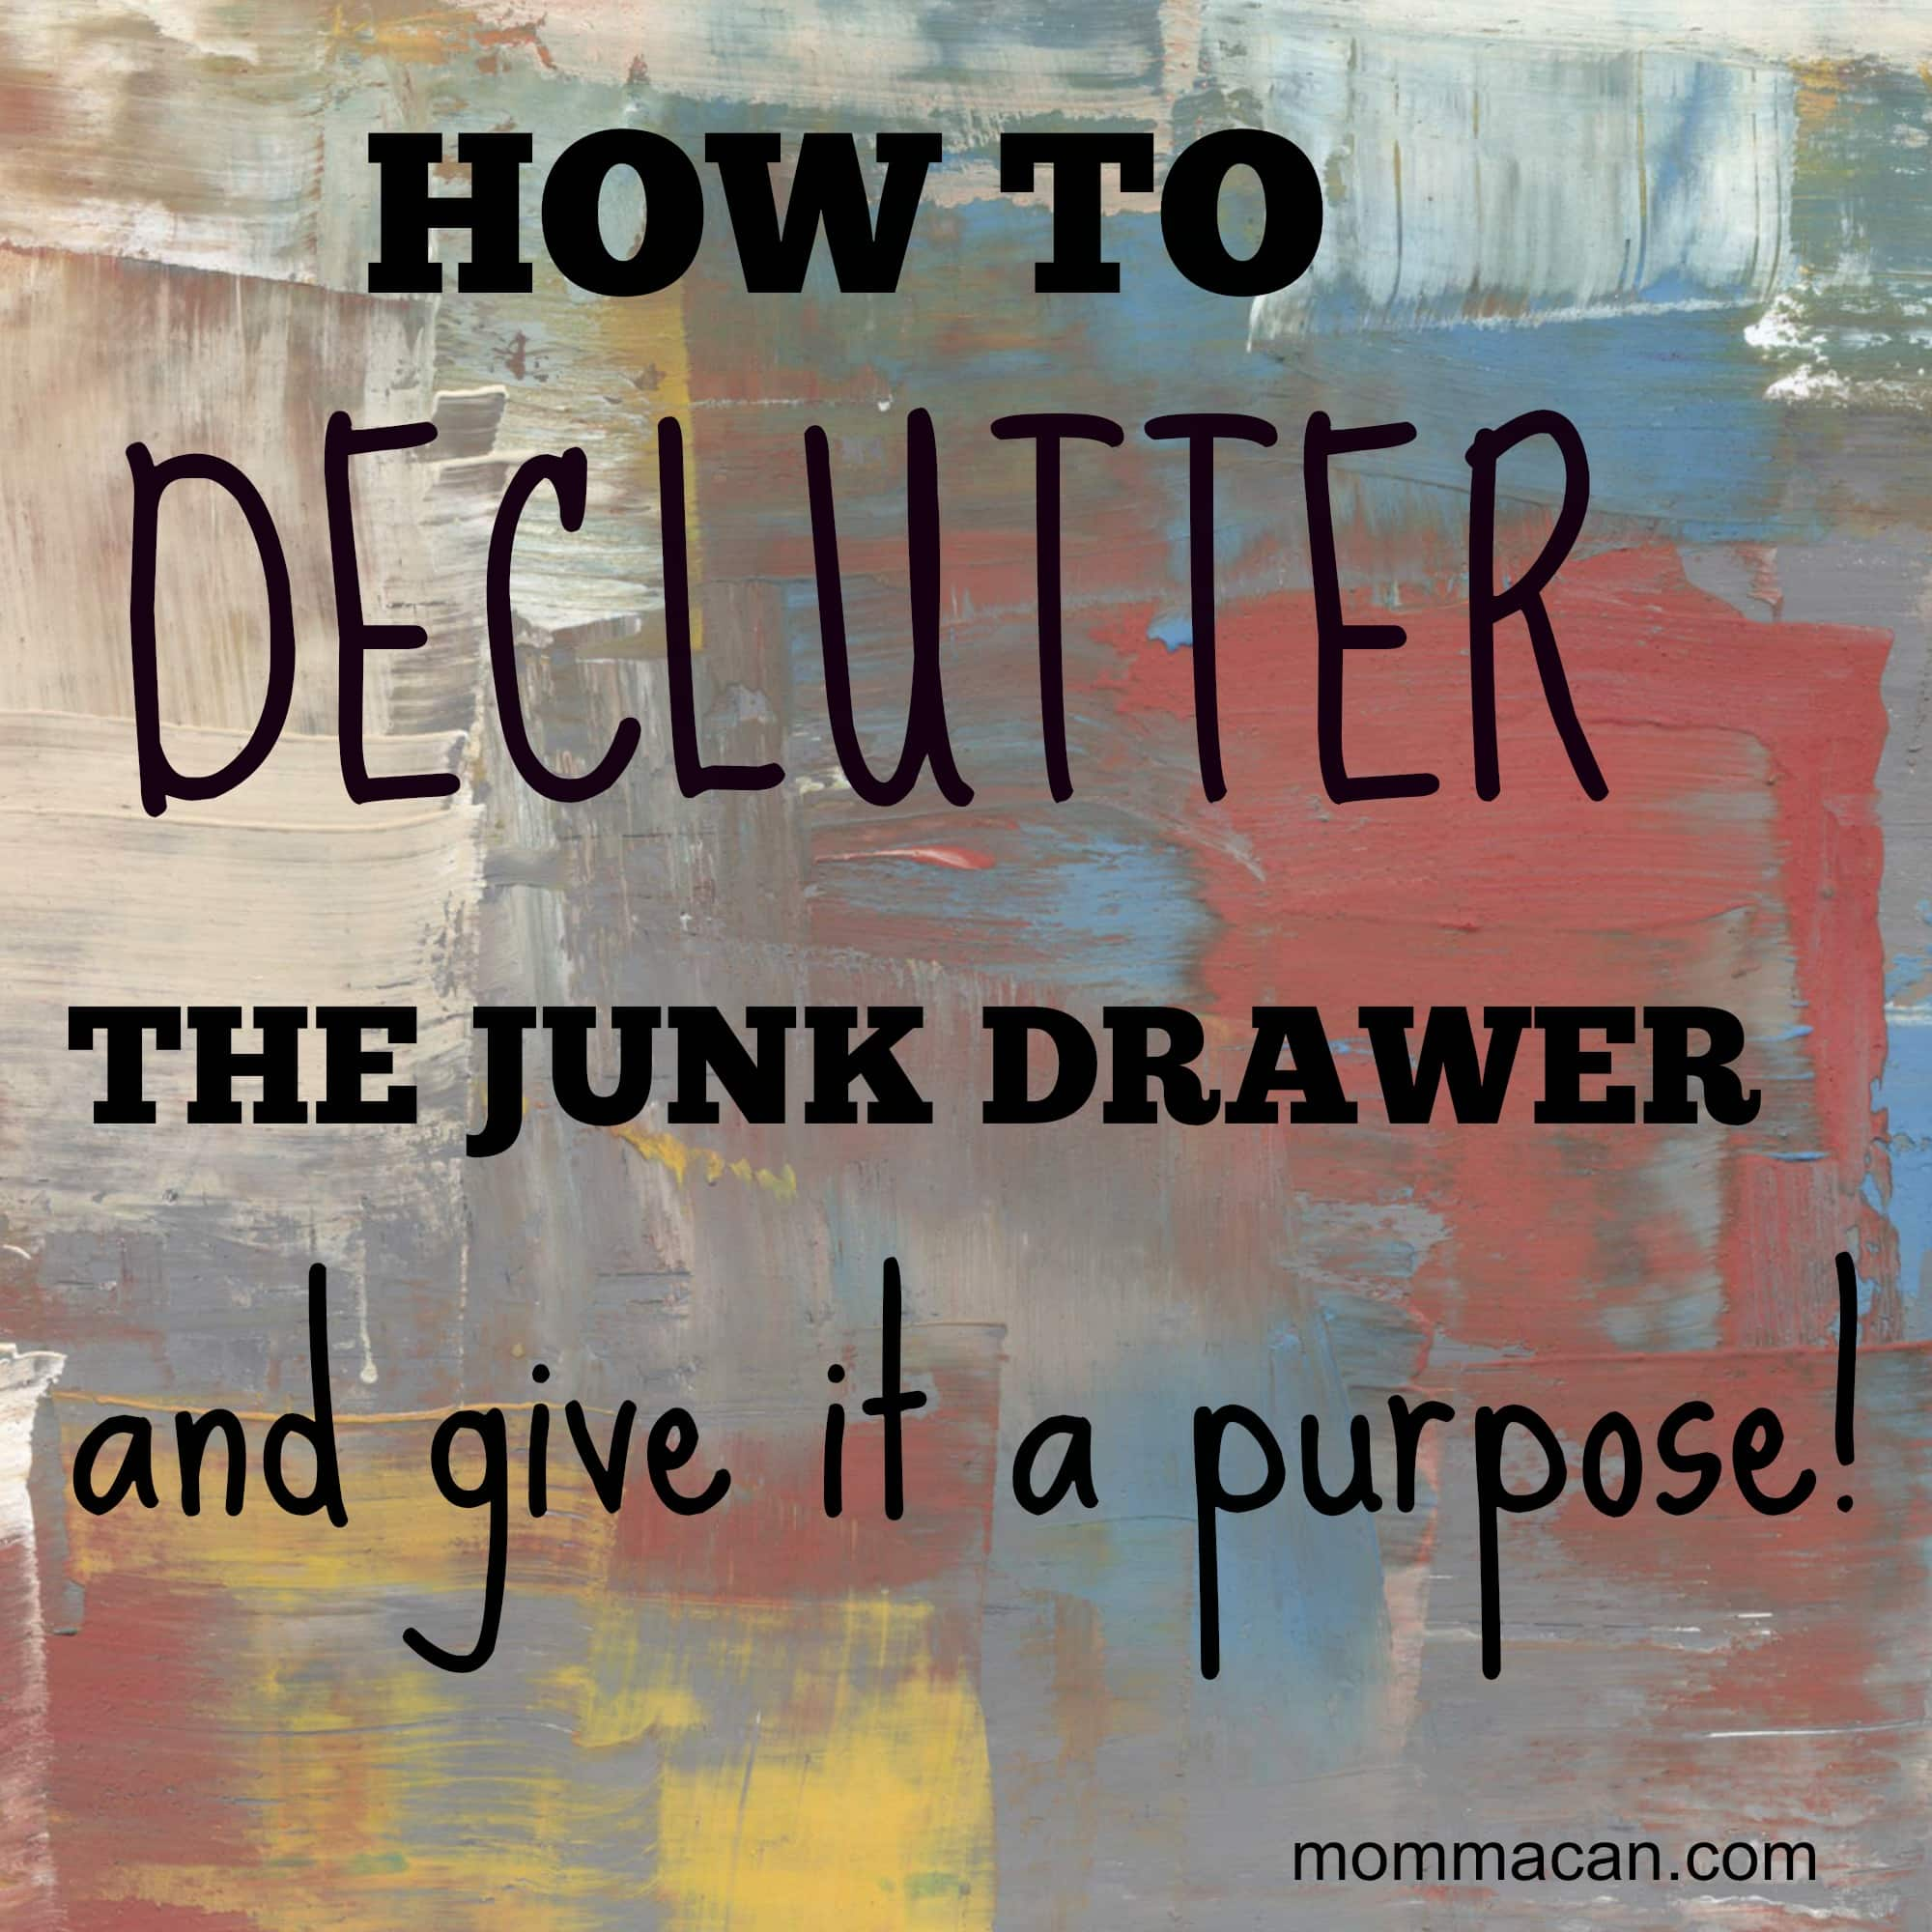 31 Day Clutter Crusade – Day 25 – The Junk Drawer